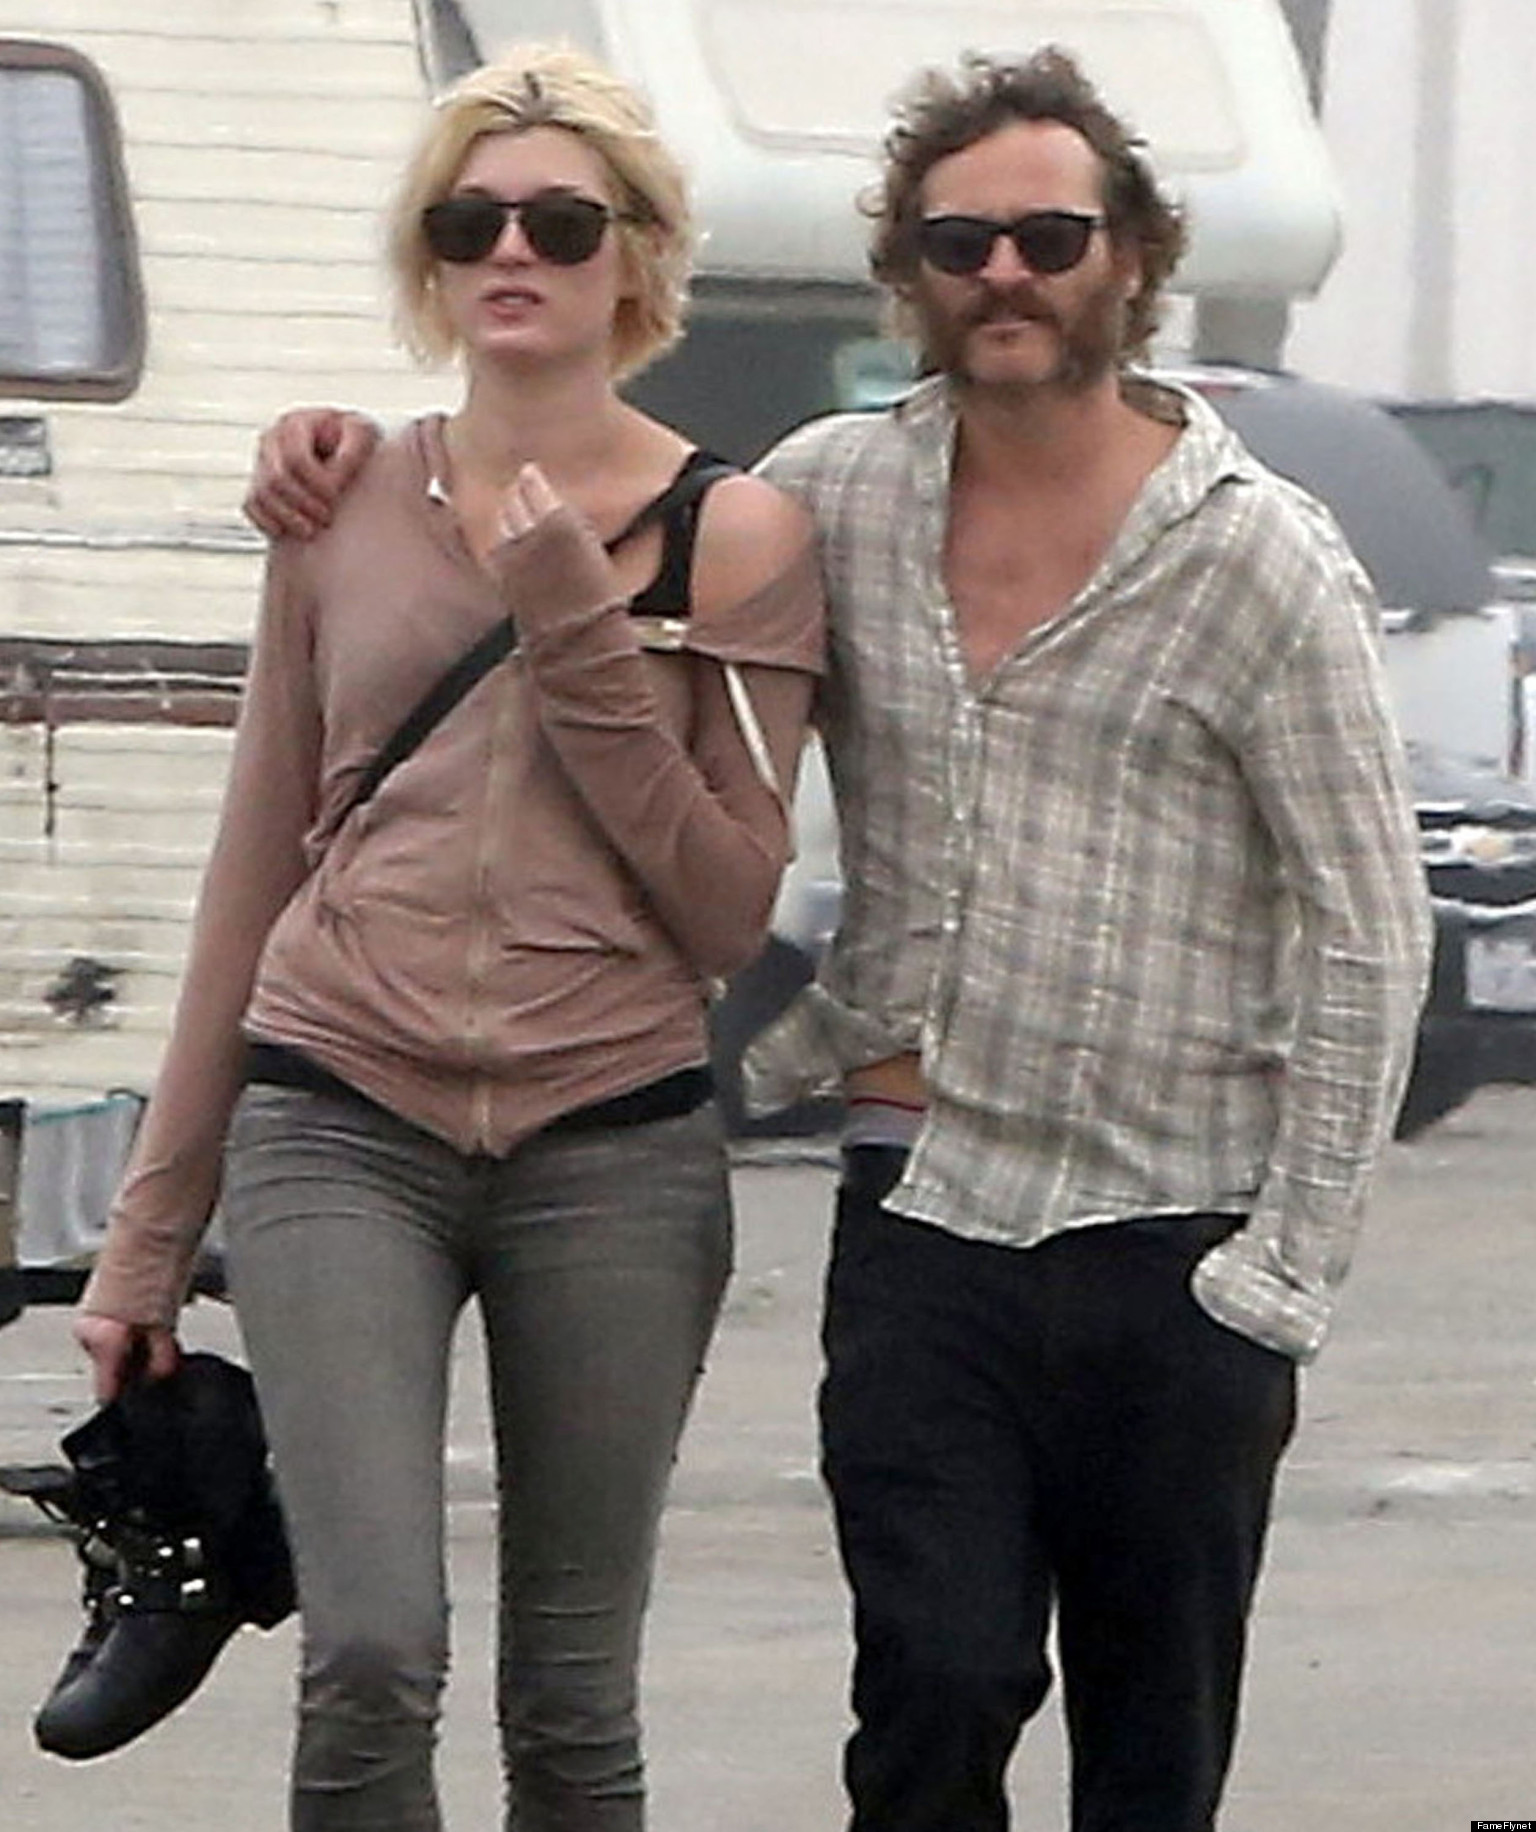 Joaquin Phoenix Photos: 'The Master' Actor Goes Incognito ...